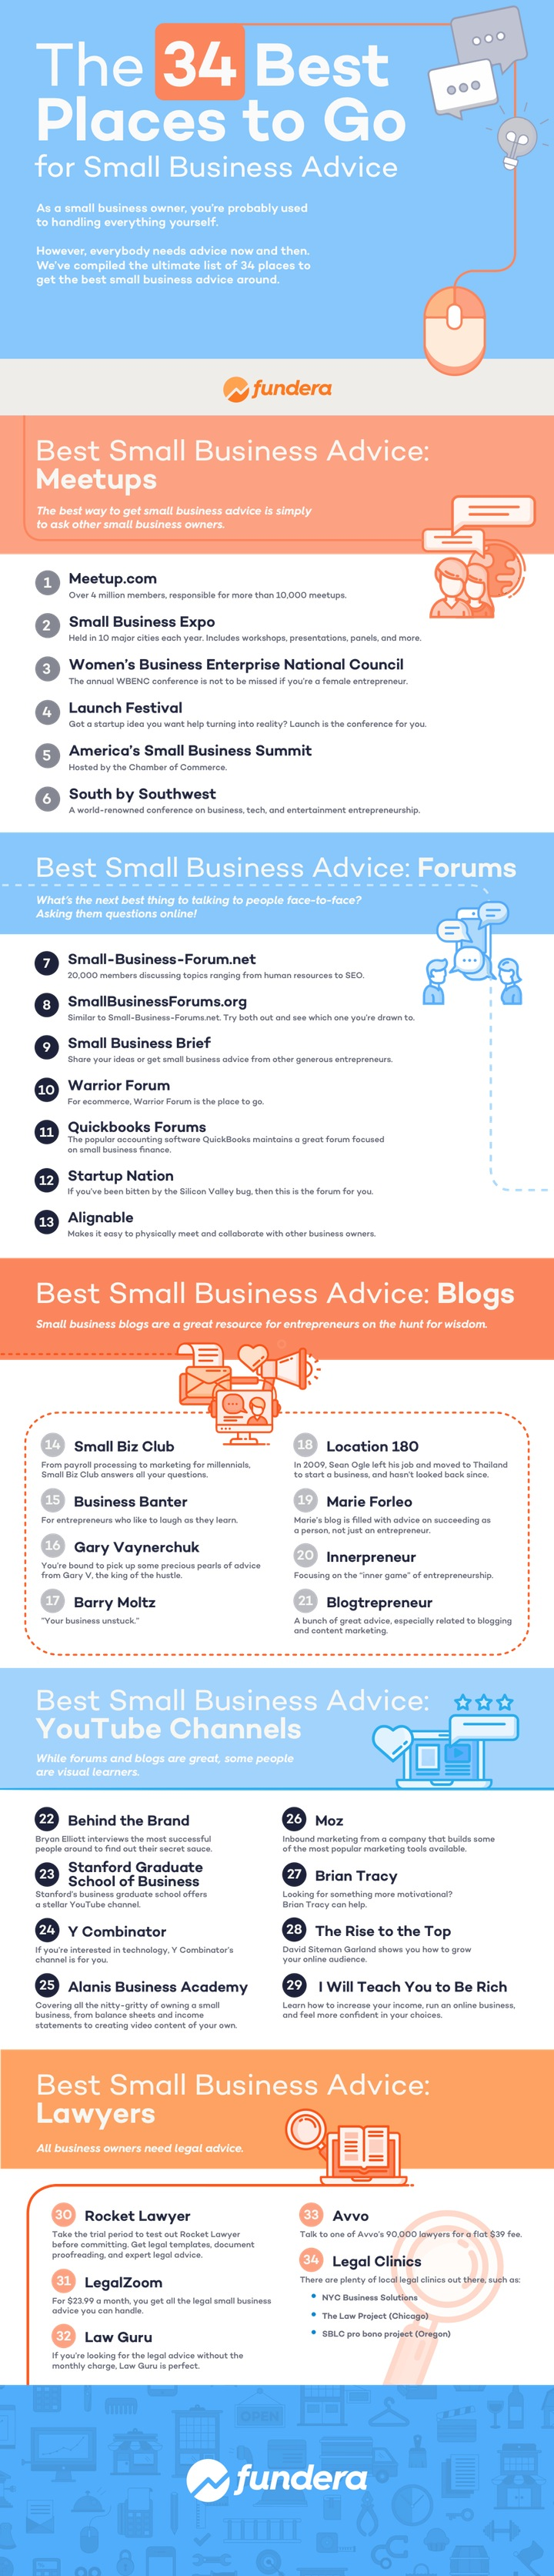 Where to Go for Small Business Advice - Infographic